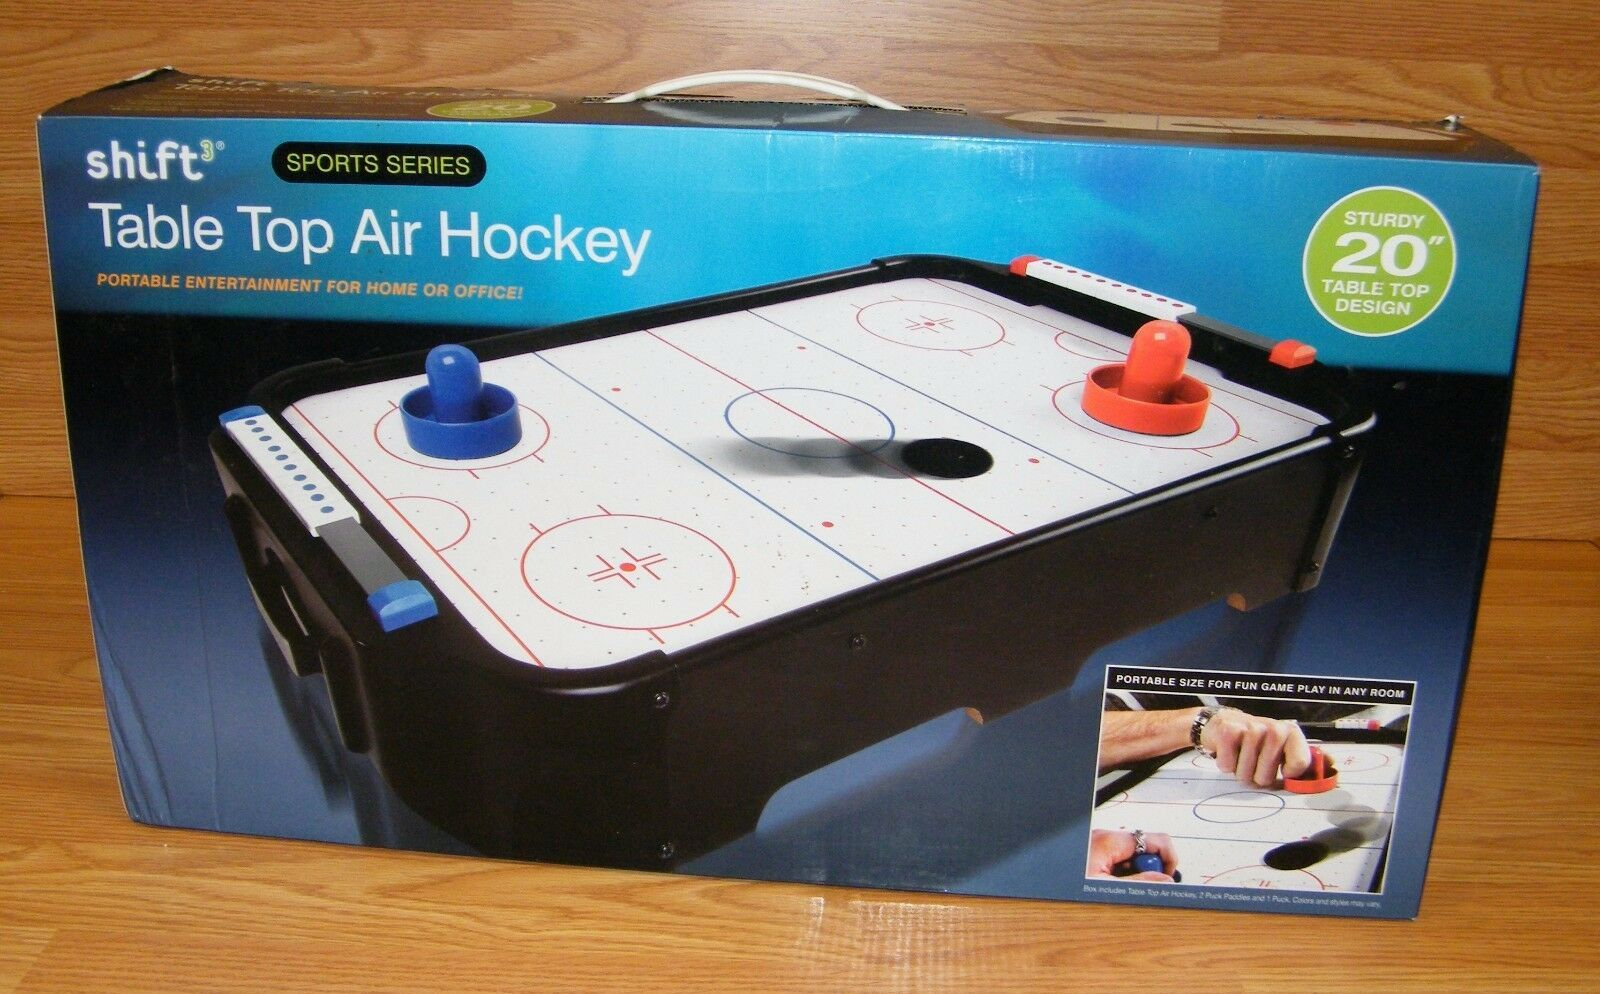 Shift3 Sports Series Sturdy 20 Portable Table Top Air Hockey Game New 23 16 Air Hockey Table Ideas Of Air Ho Air Hockey Table Air Hockey Air Hockey Games